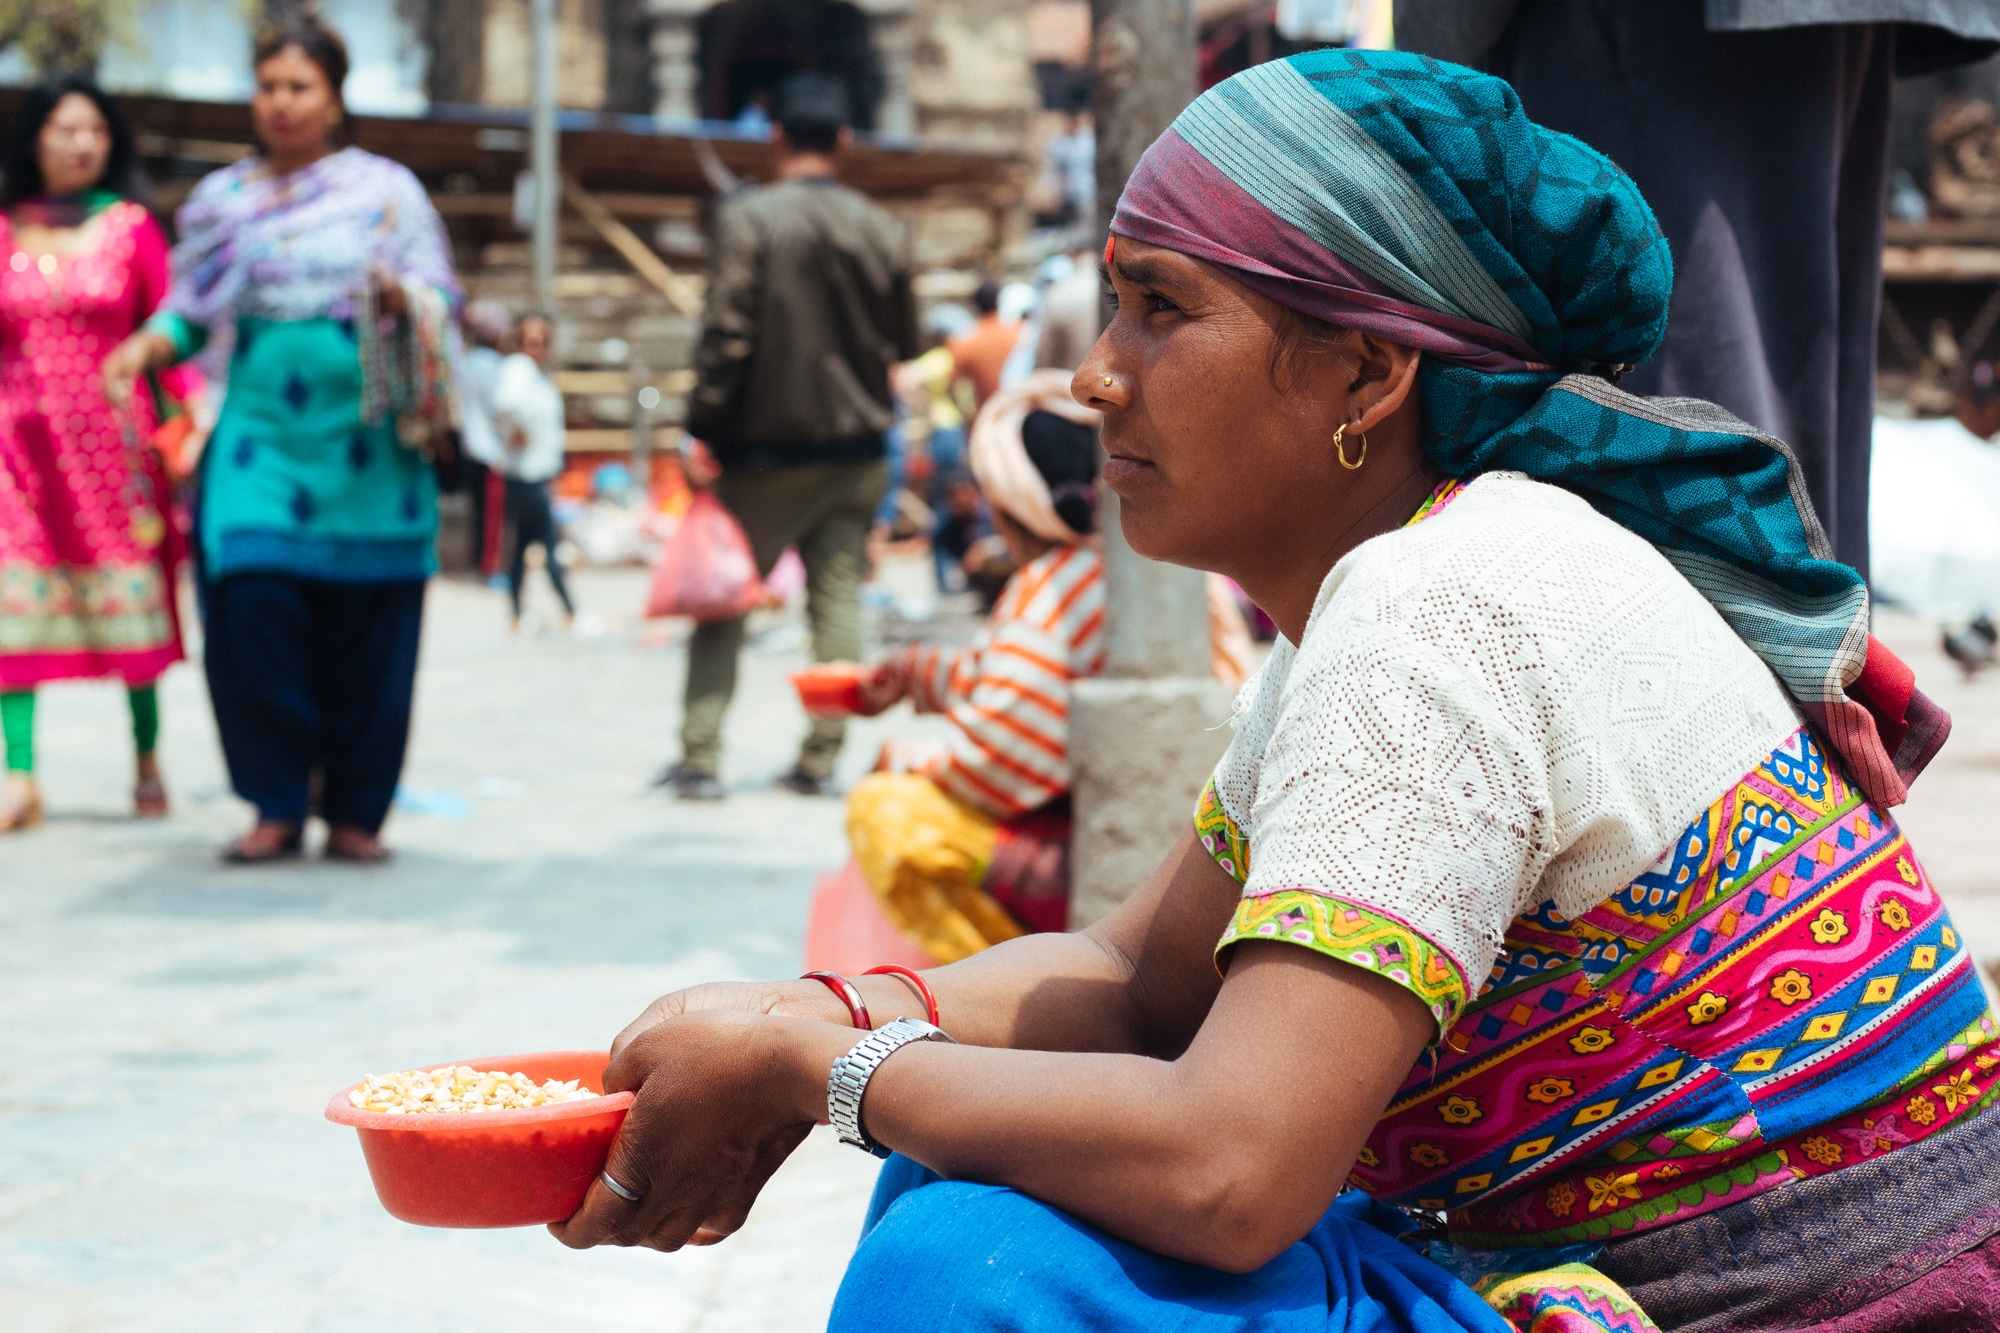 A woman selling corn to feed pigeons